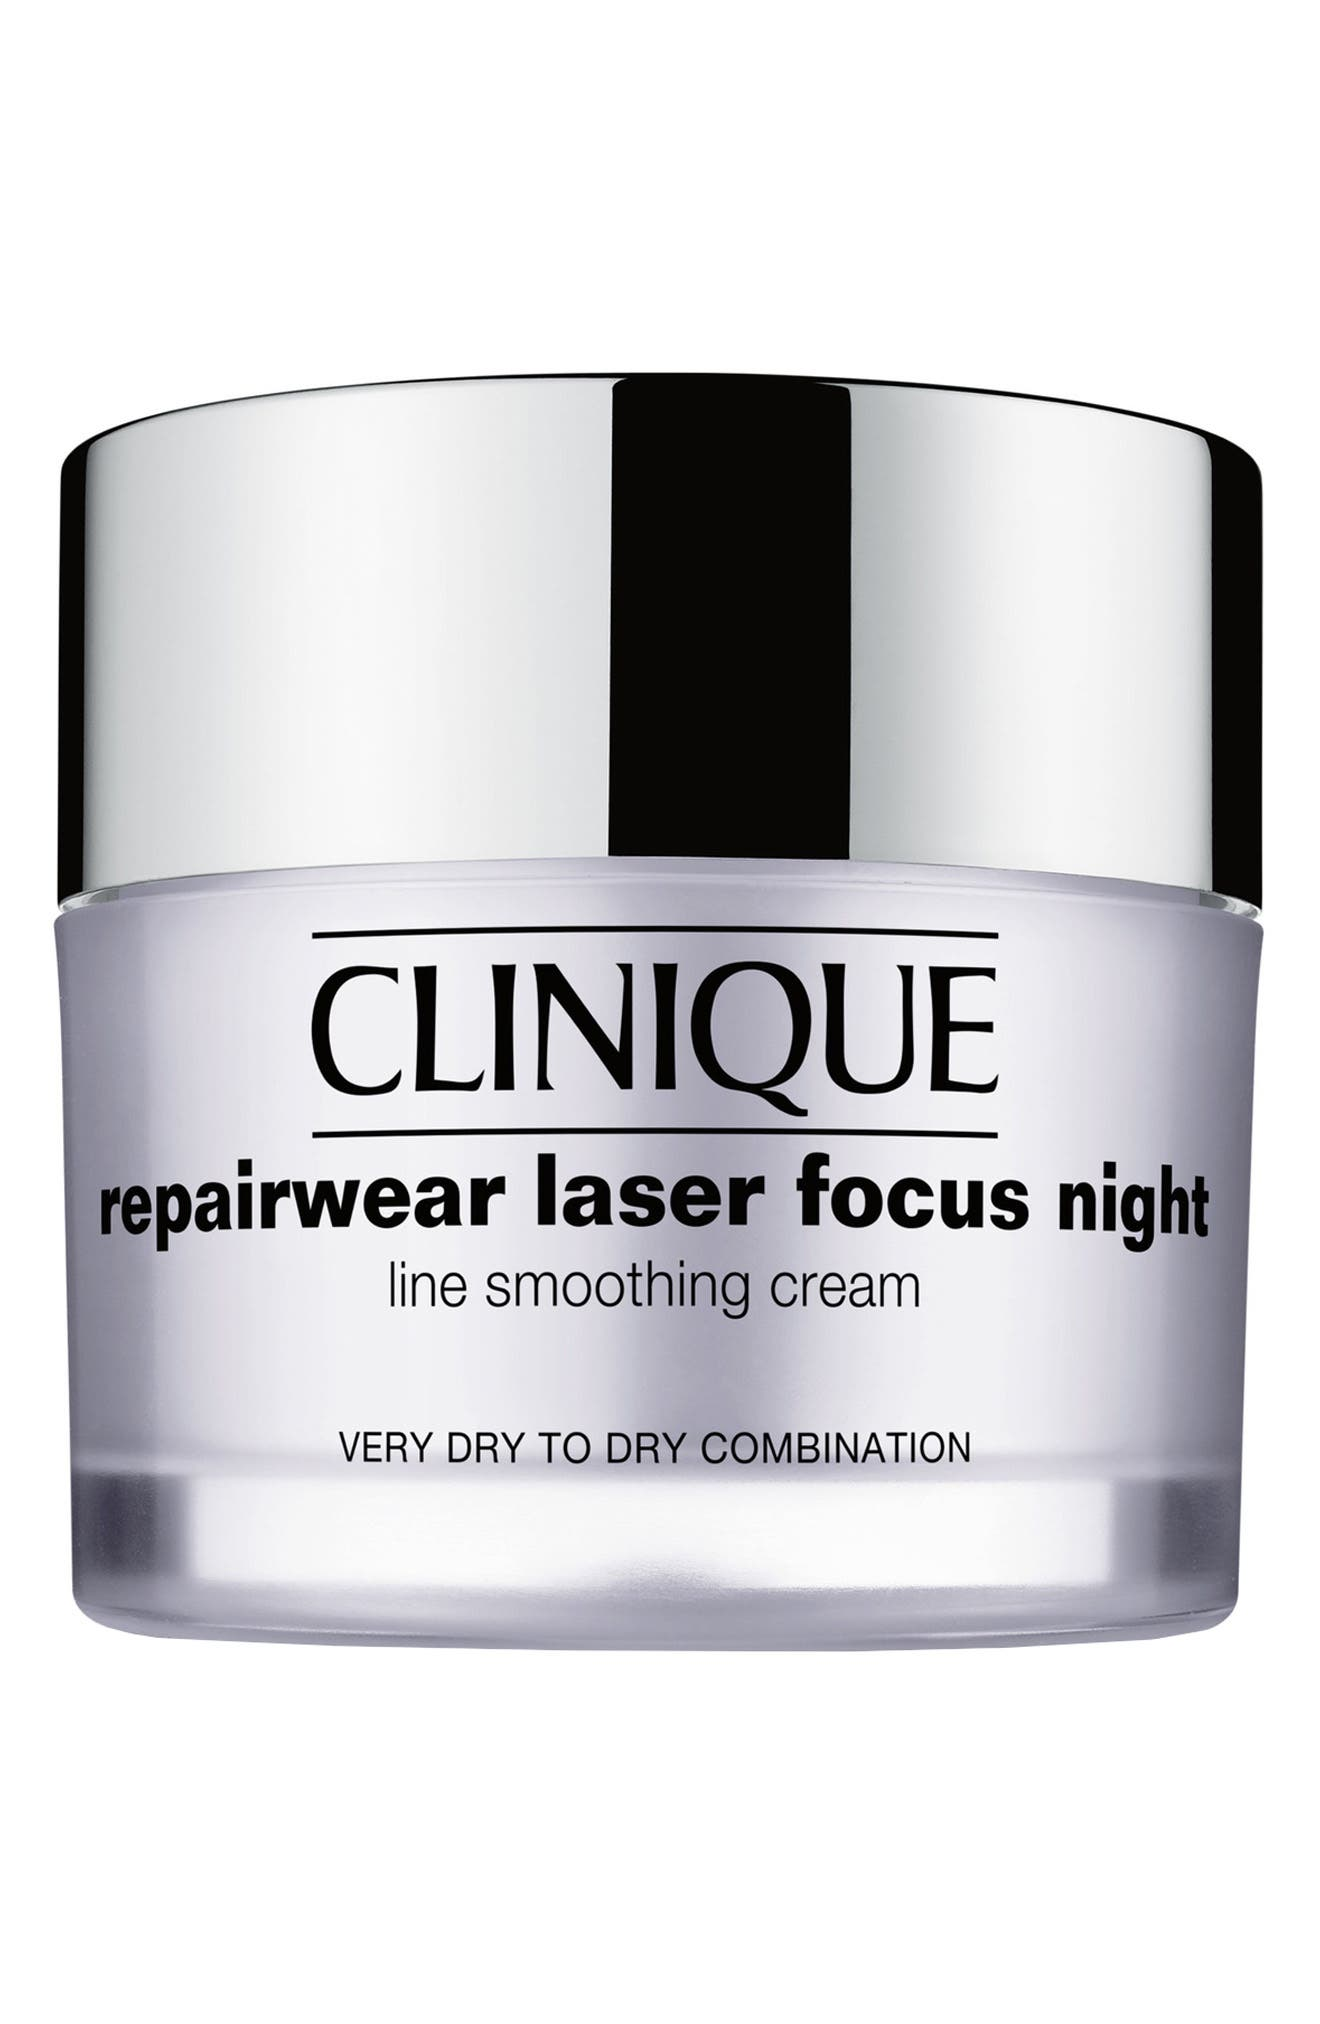 Repairwear Laser Focus Night Line Smoothing Cream,                             Alternate thumbnail 2, color,                             VERY DRY TO DRY COMBINATION